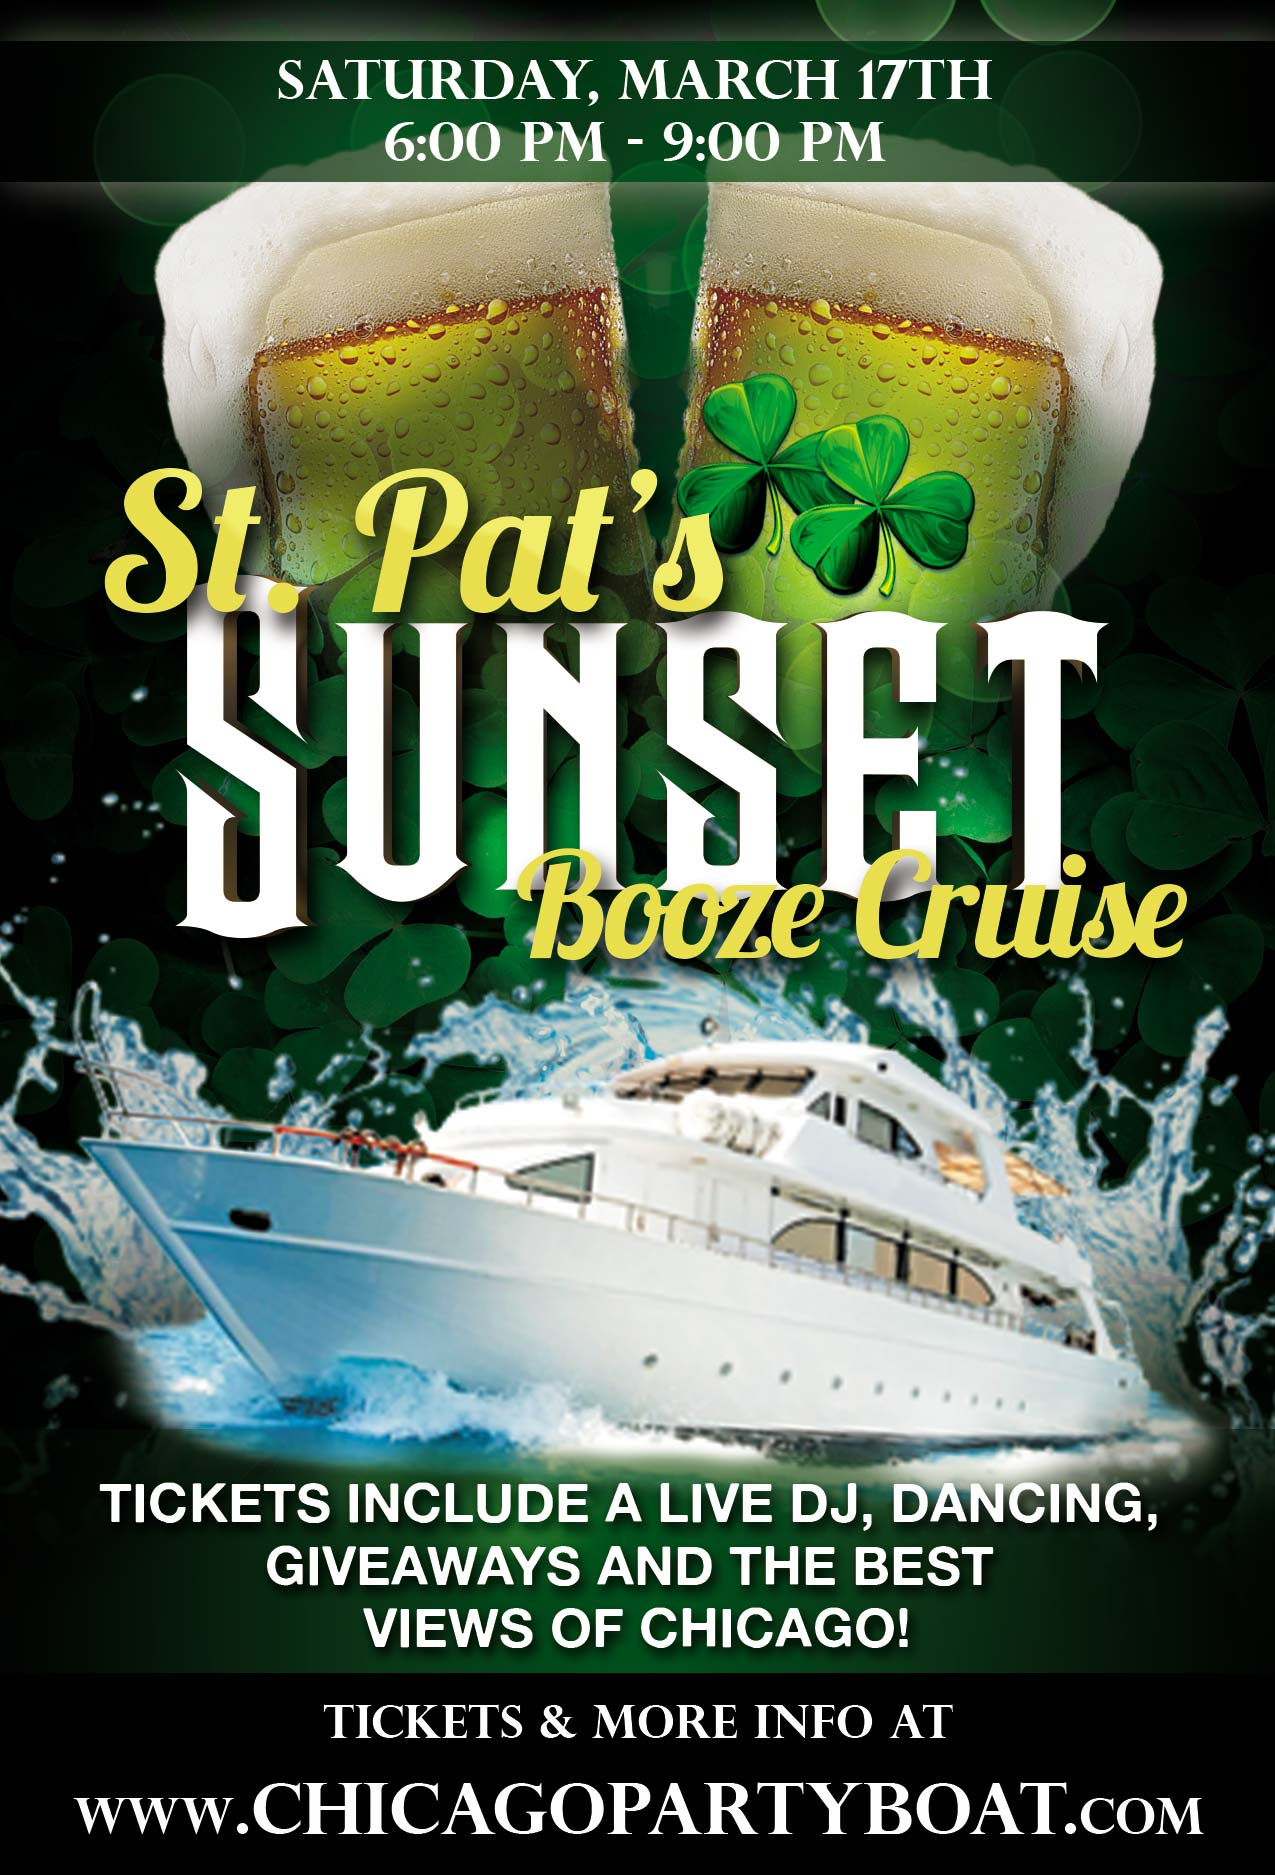 St. Patrick's Day Booze Cruise Party - Tickets include a Live DJ, Dancing, Giveaways, and the best views of Chicago!